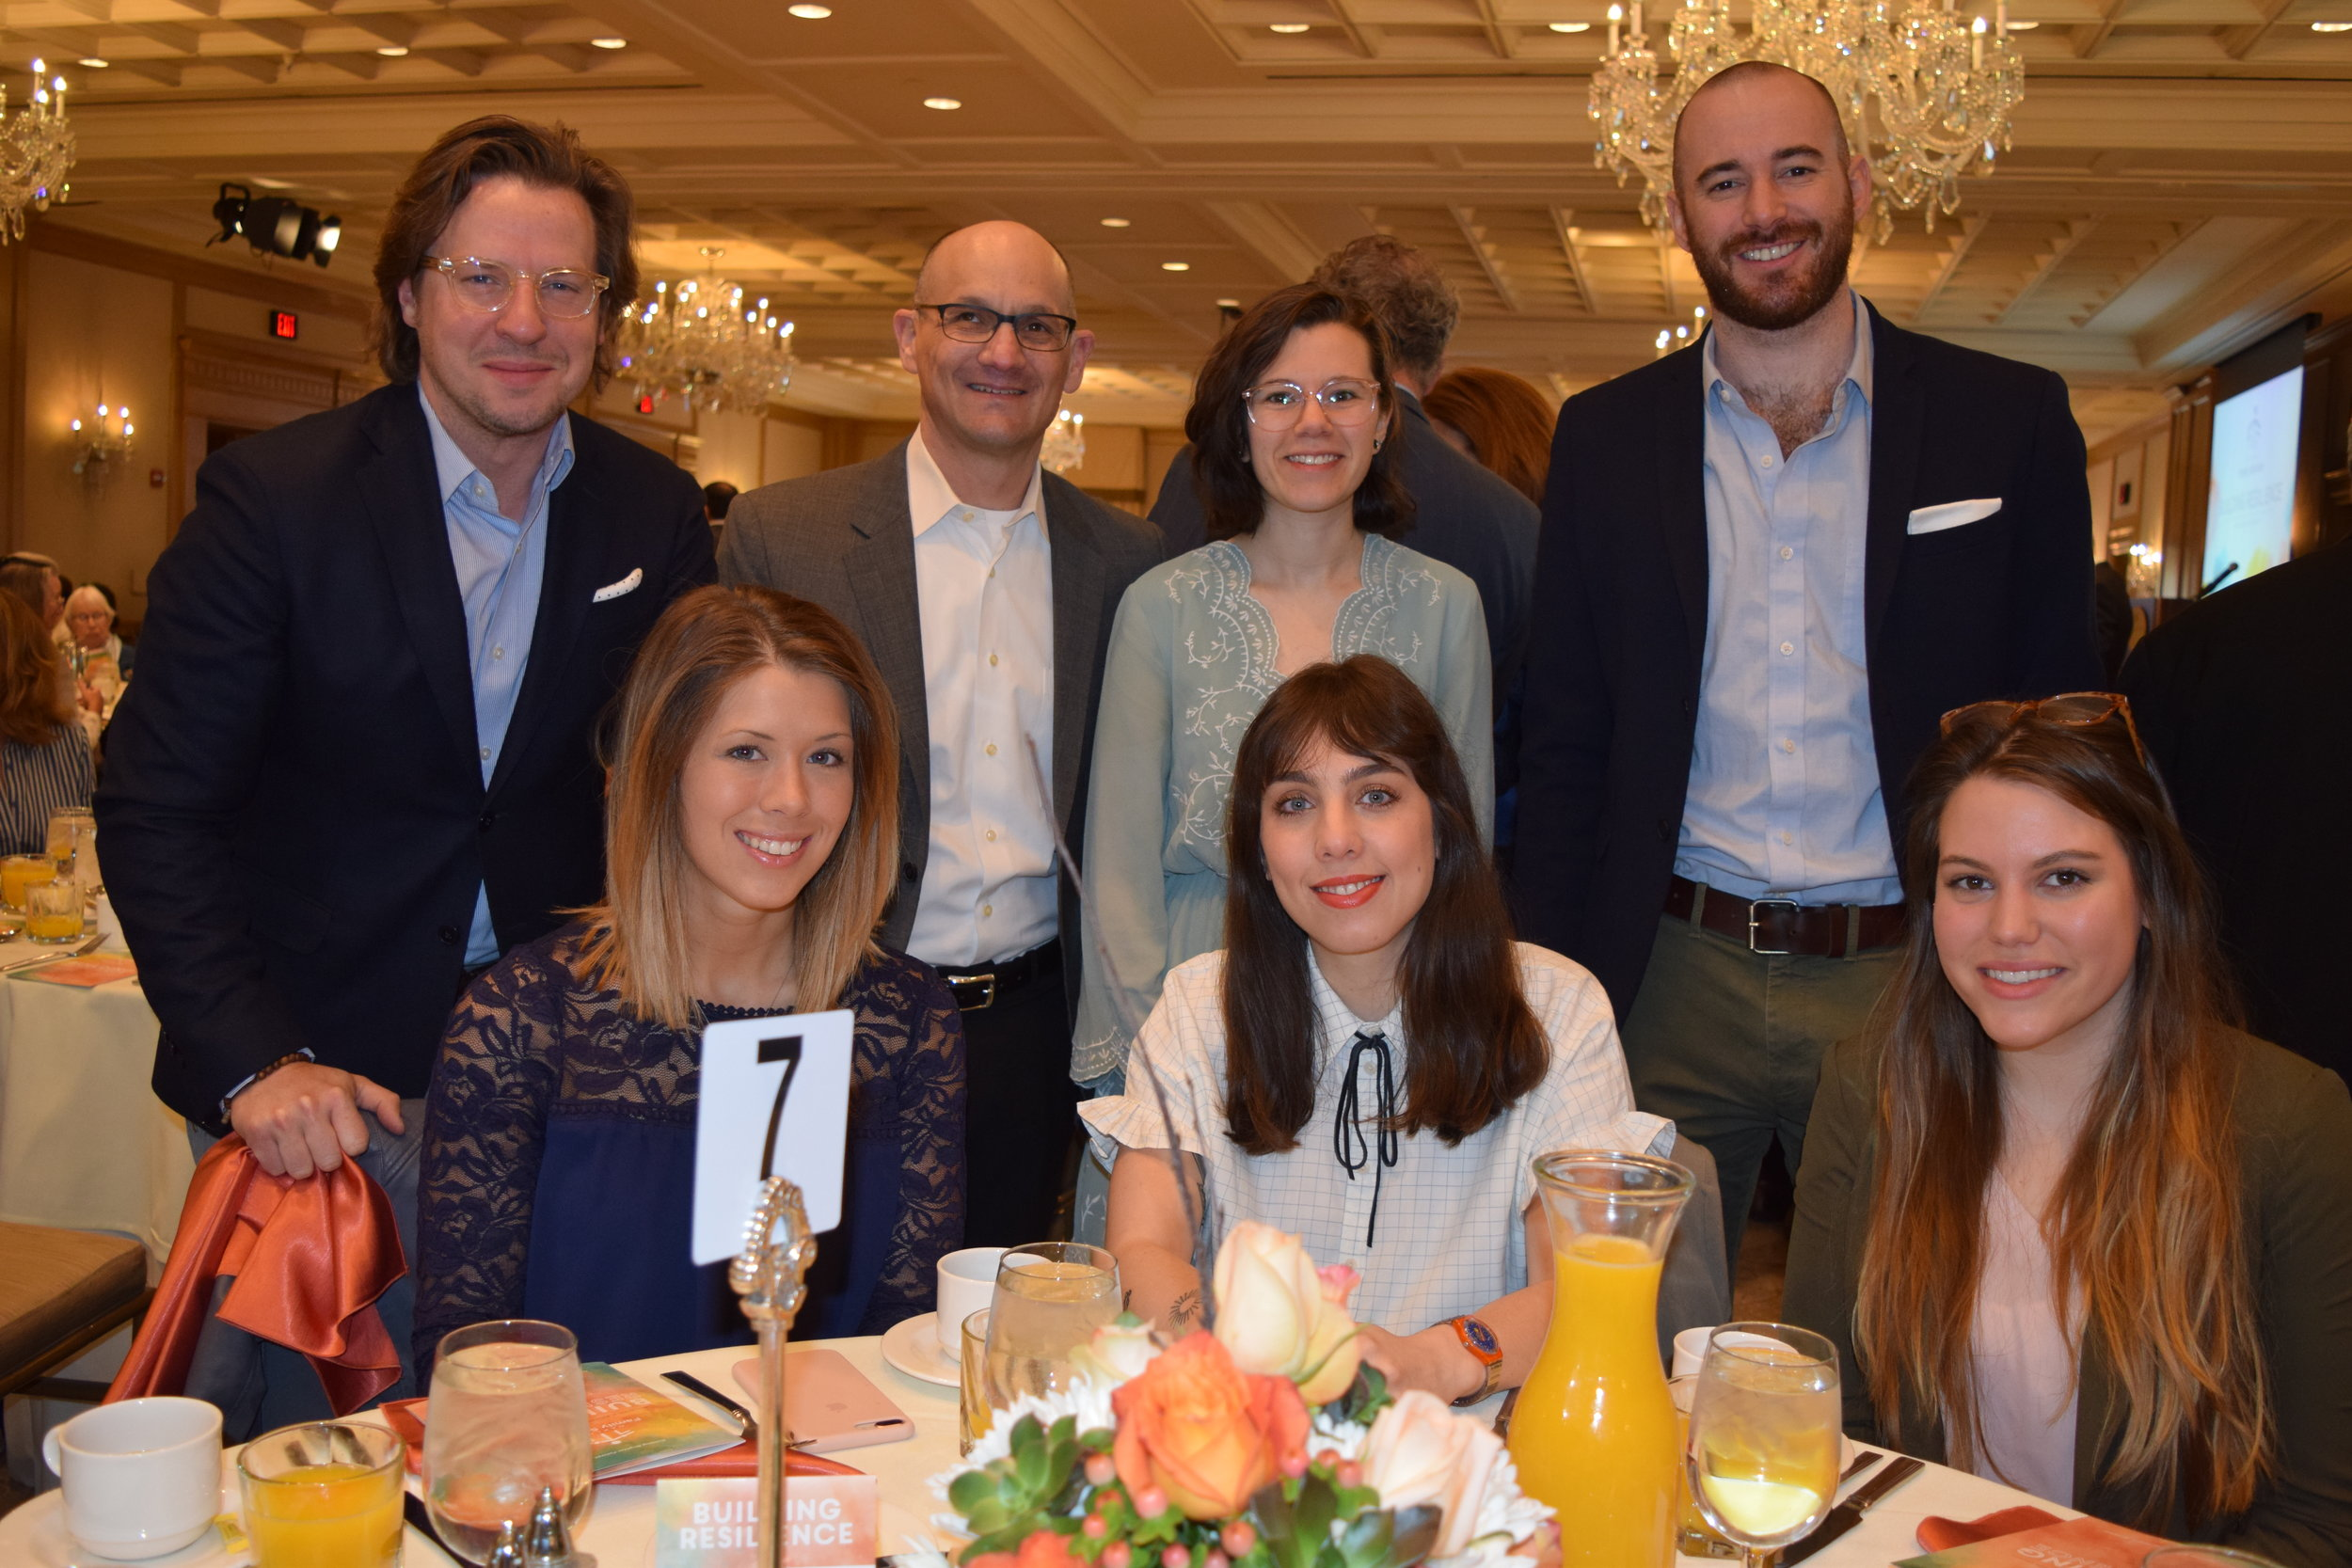 Representatives of breakfast sponsors  Seeds marketing + design  attended the event.